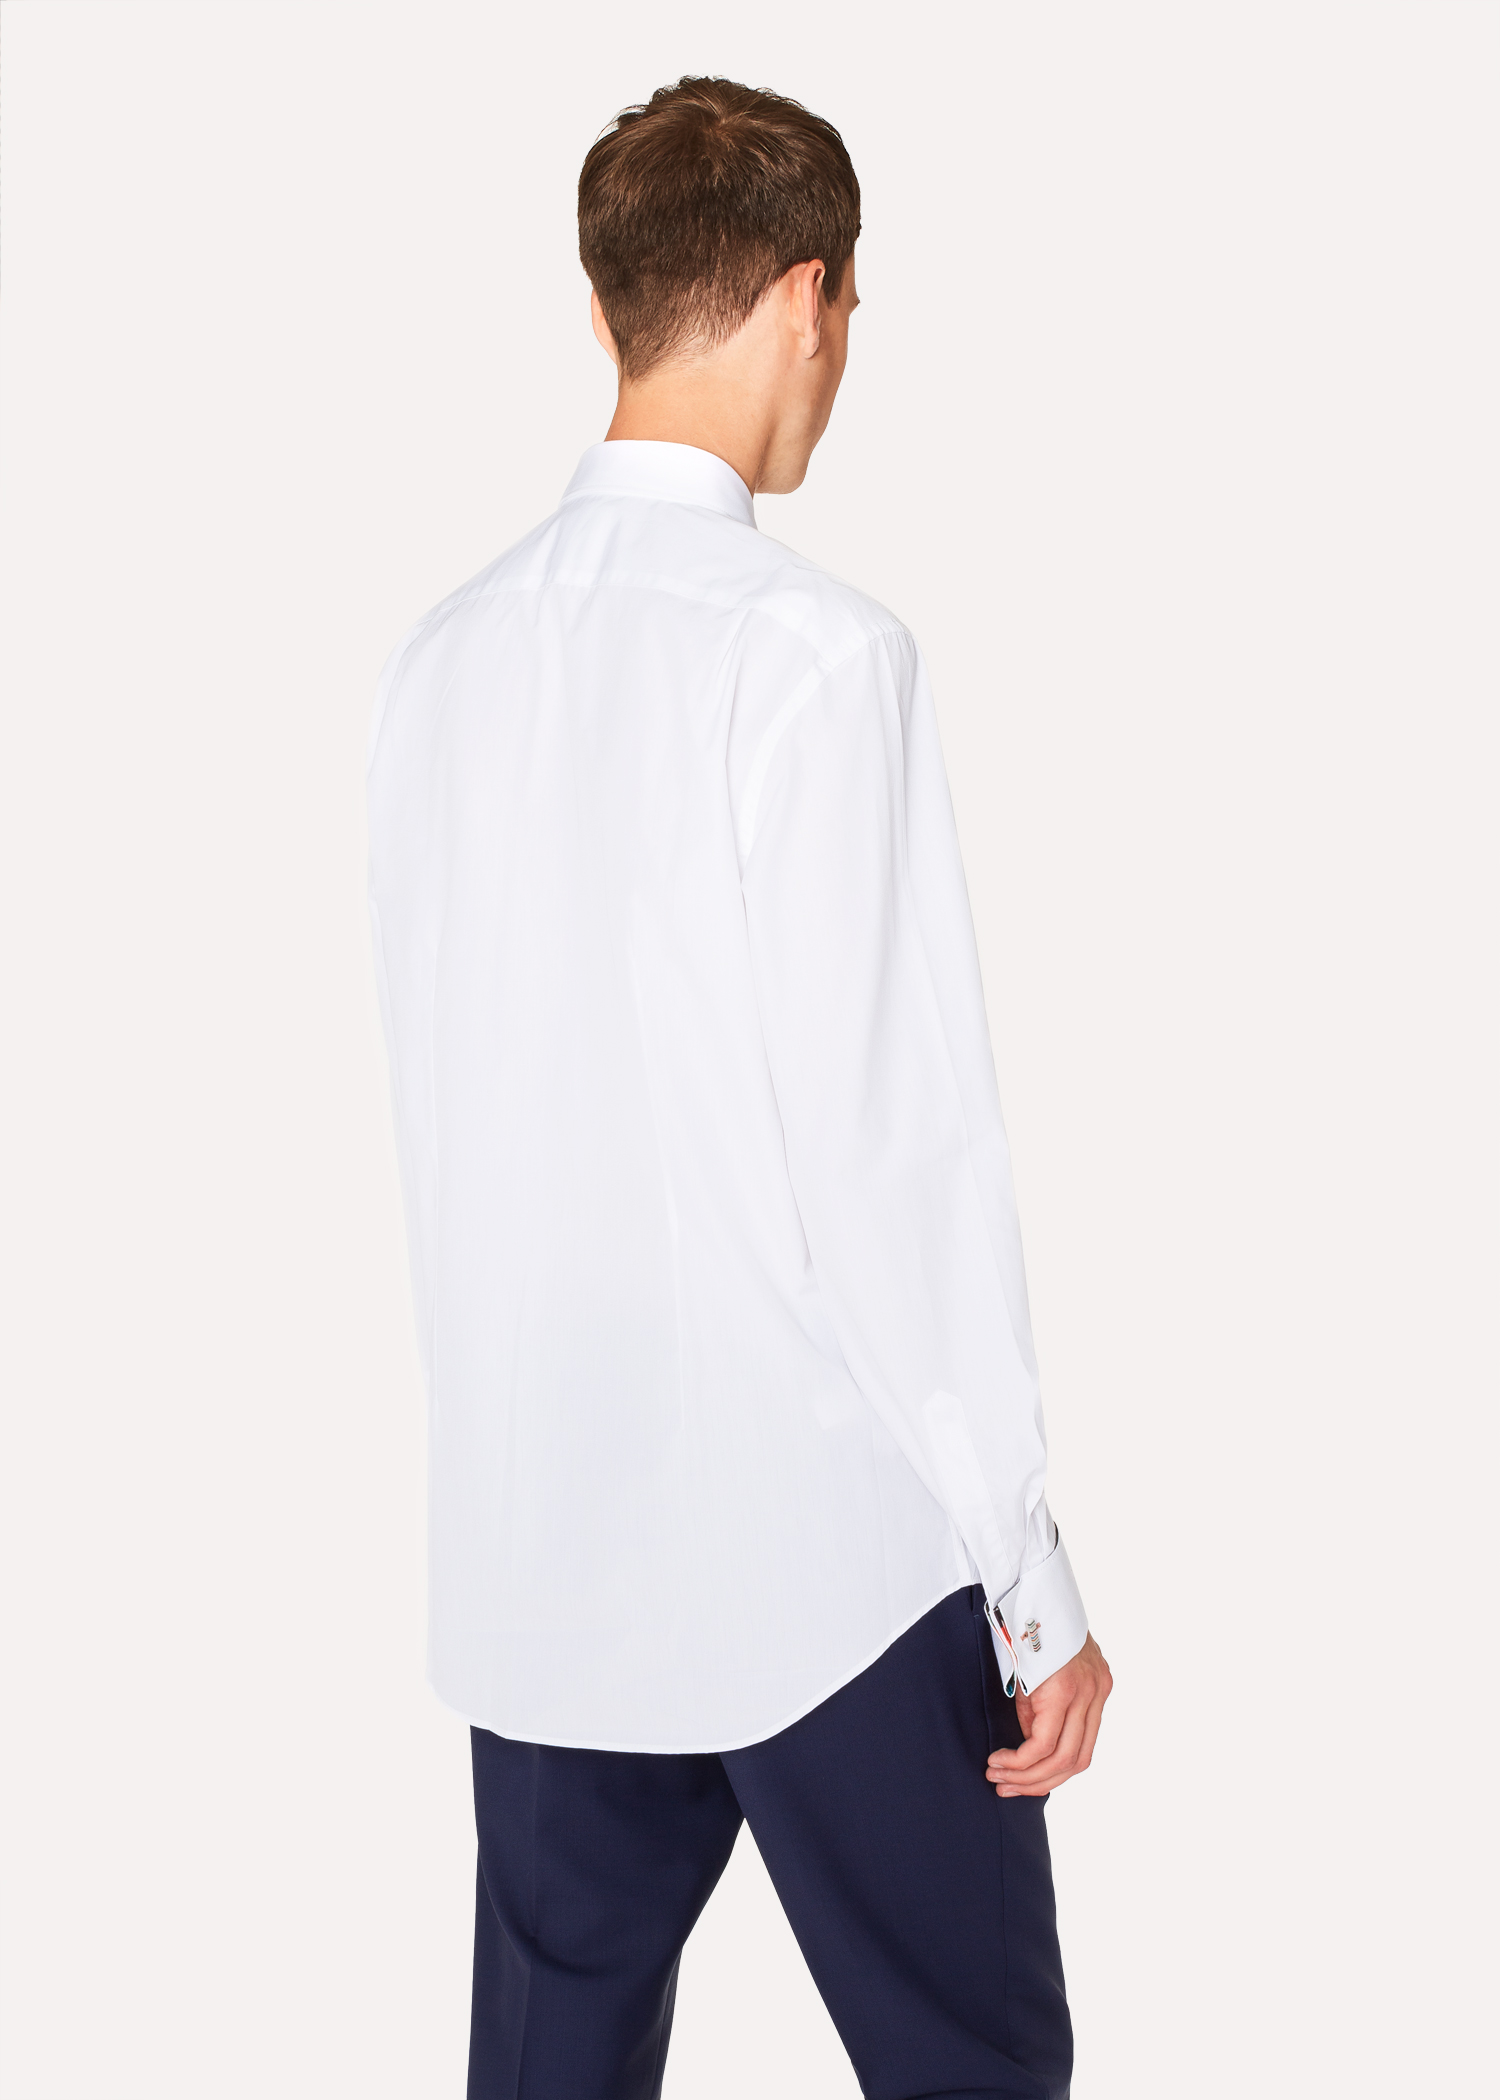 Men S Tailored Fit White Pleated Bib Cotton Evening Shirt With